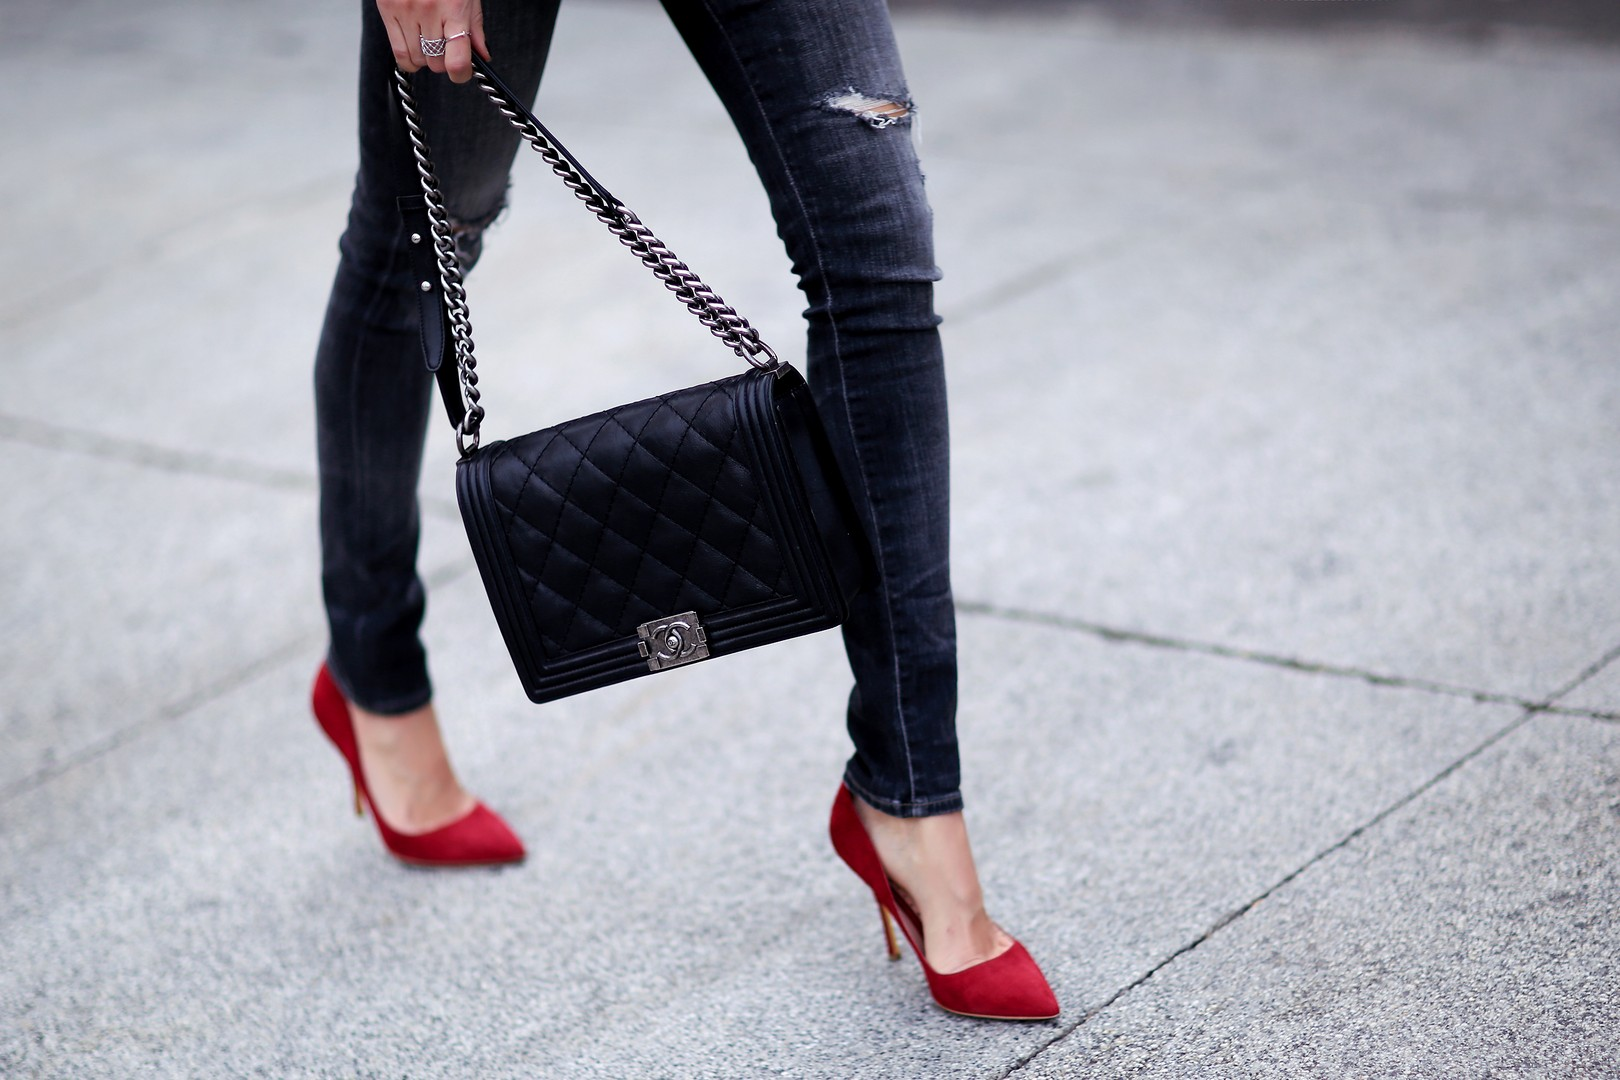 Chanel Boy Bag with red shoes